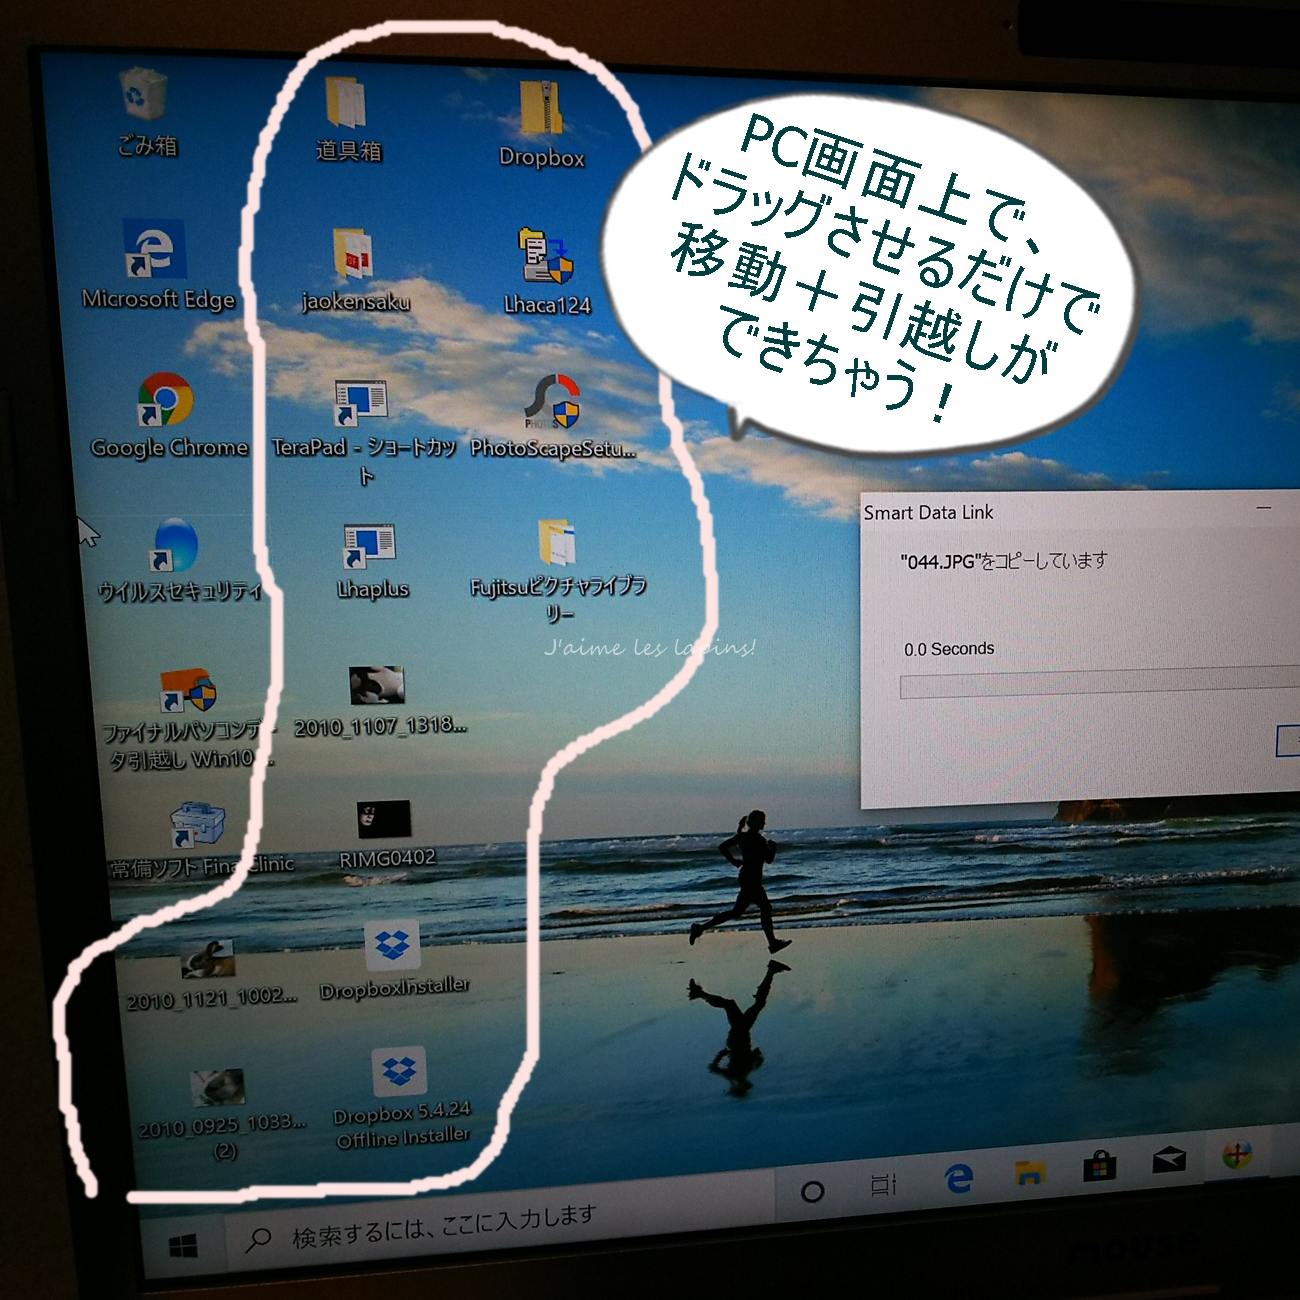 PCデータ引越し開始新パソコン側